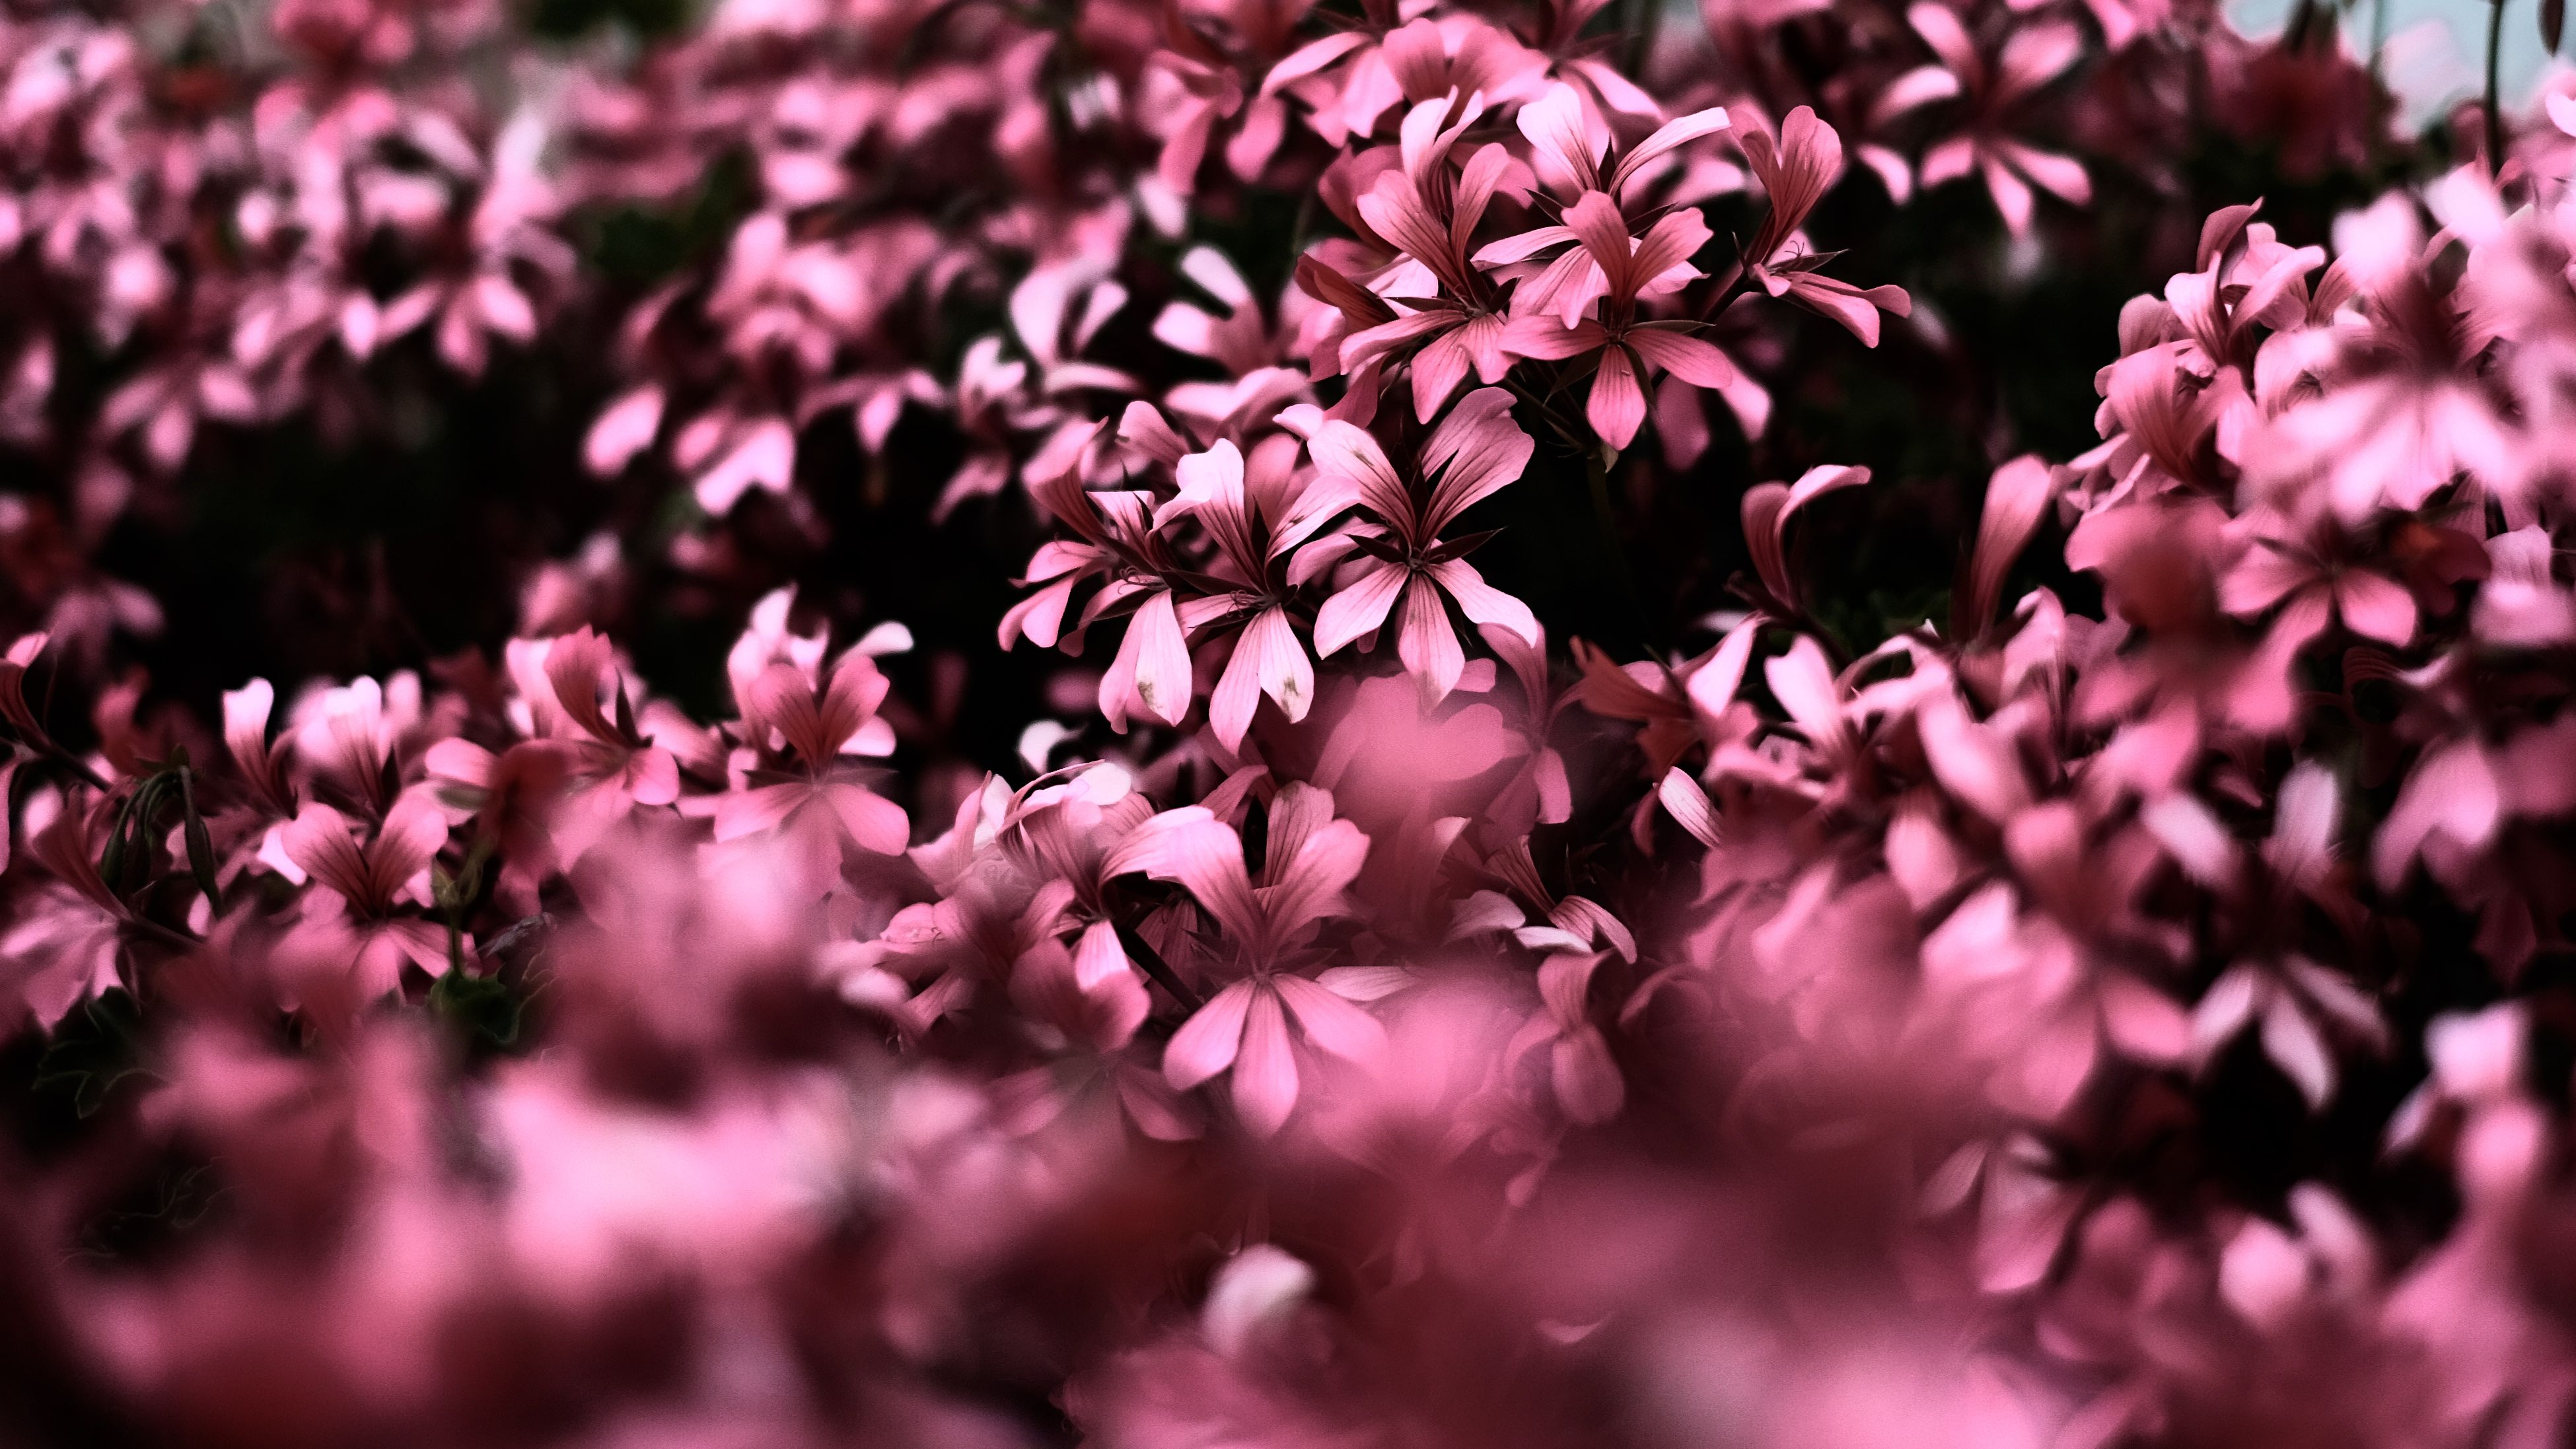 Pink Flowers Ultra Hd Blur 4k, HD Flowers, 4k Wallpapers, Images